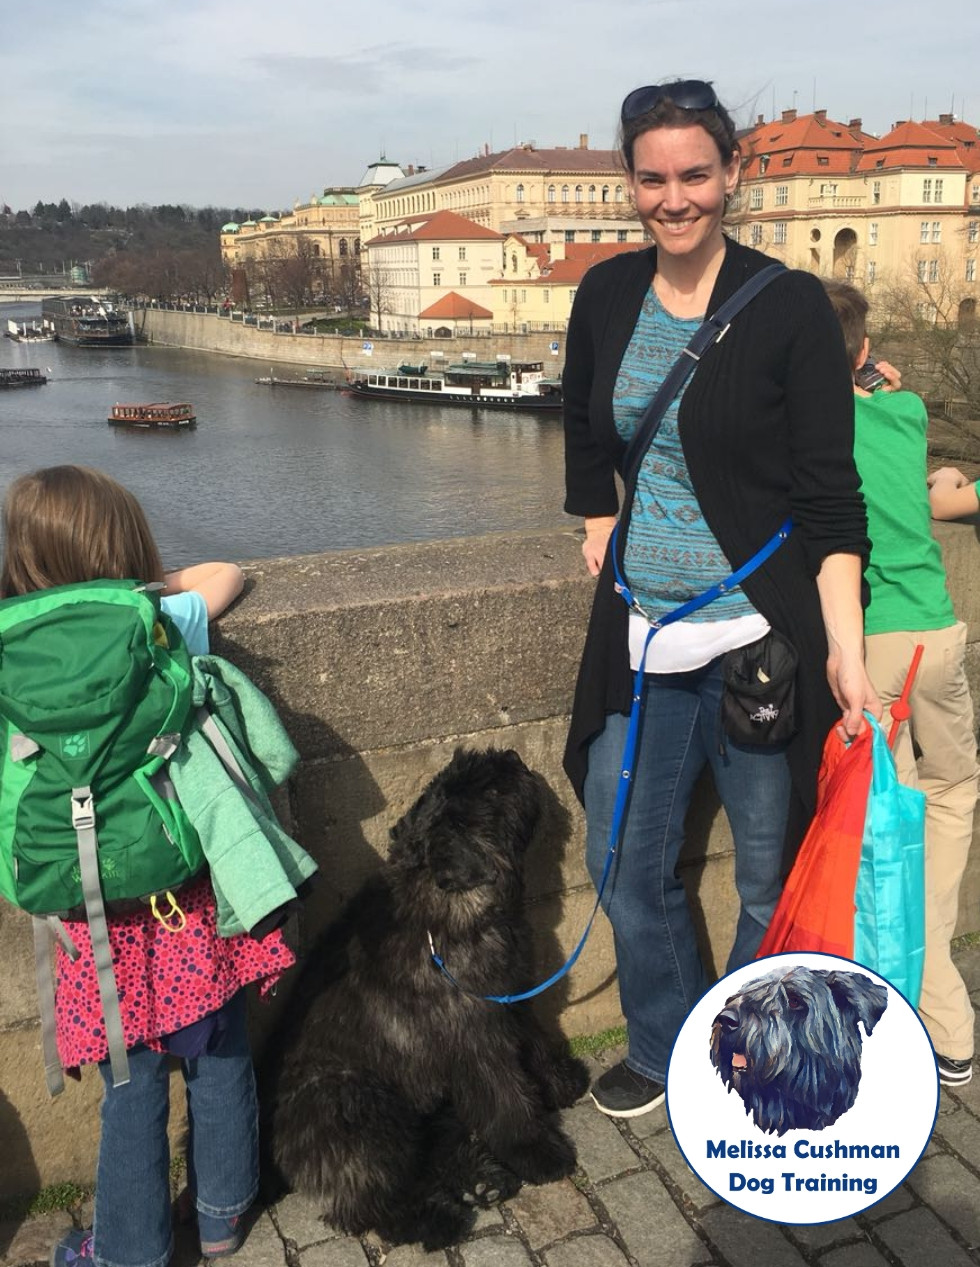 Melissa Cushman and Gunther a Bouvier des Flandres puppy traveling in Europe